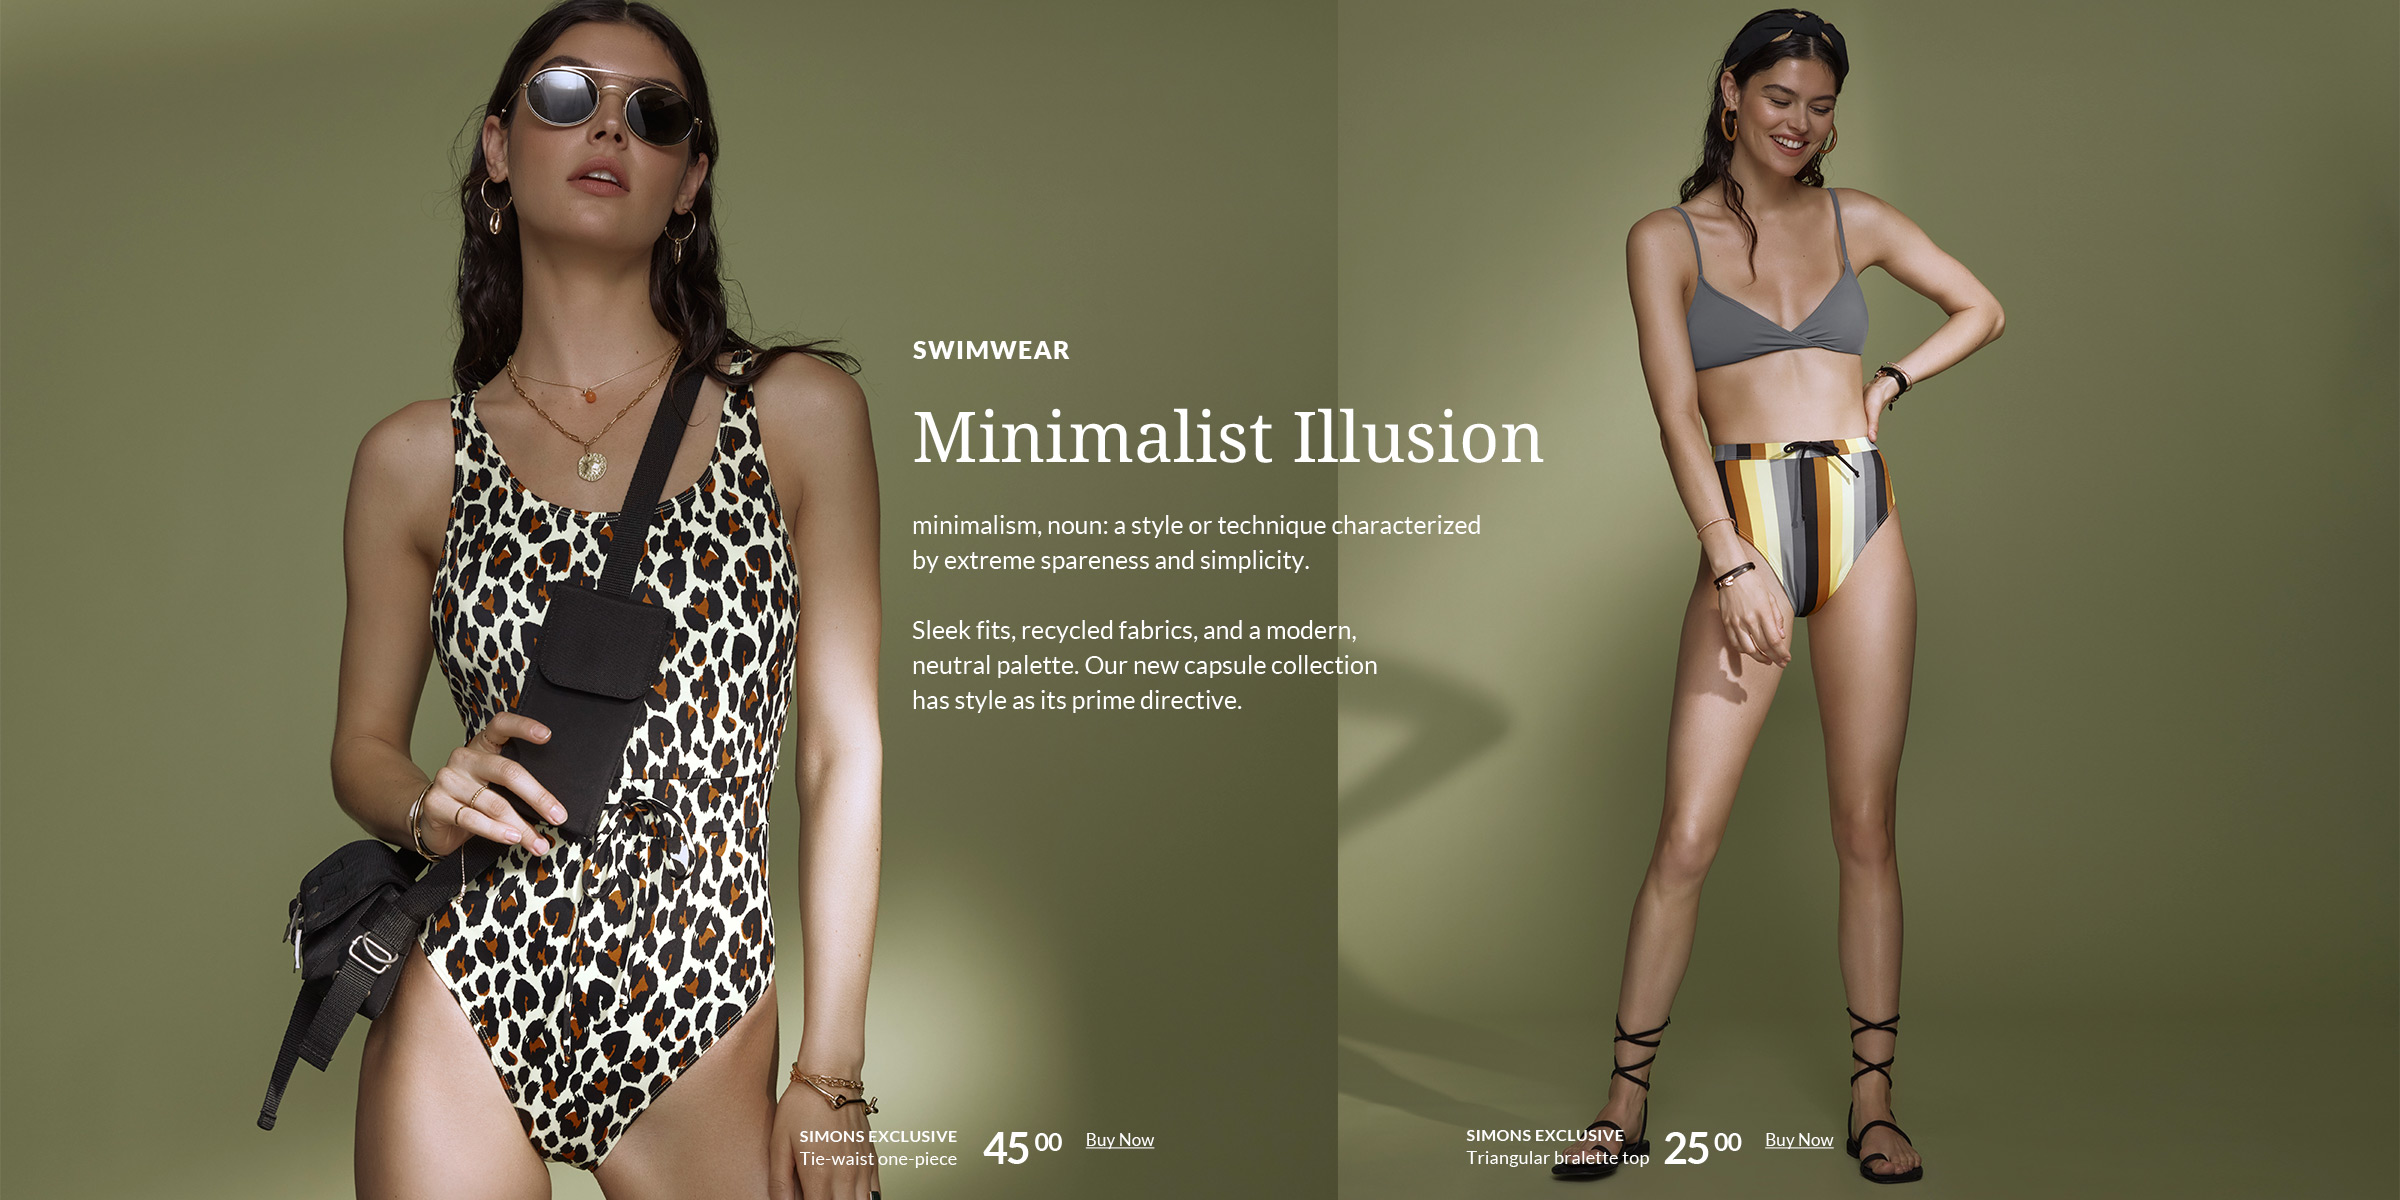 D-MS-00-P19-MAILLOTS-FEMME-IllusionMinimaliste-01-V1.psd